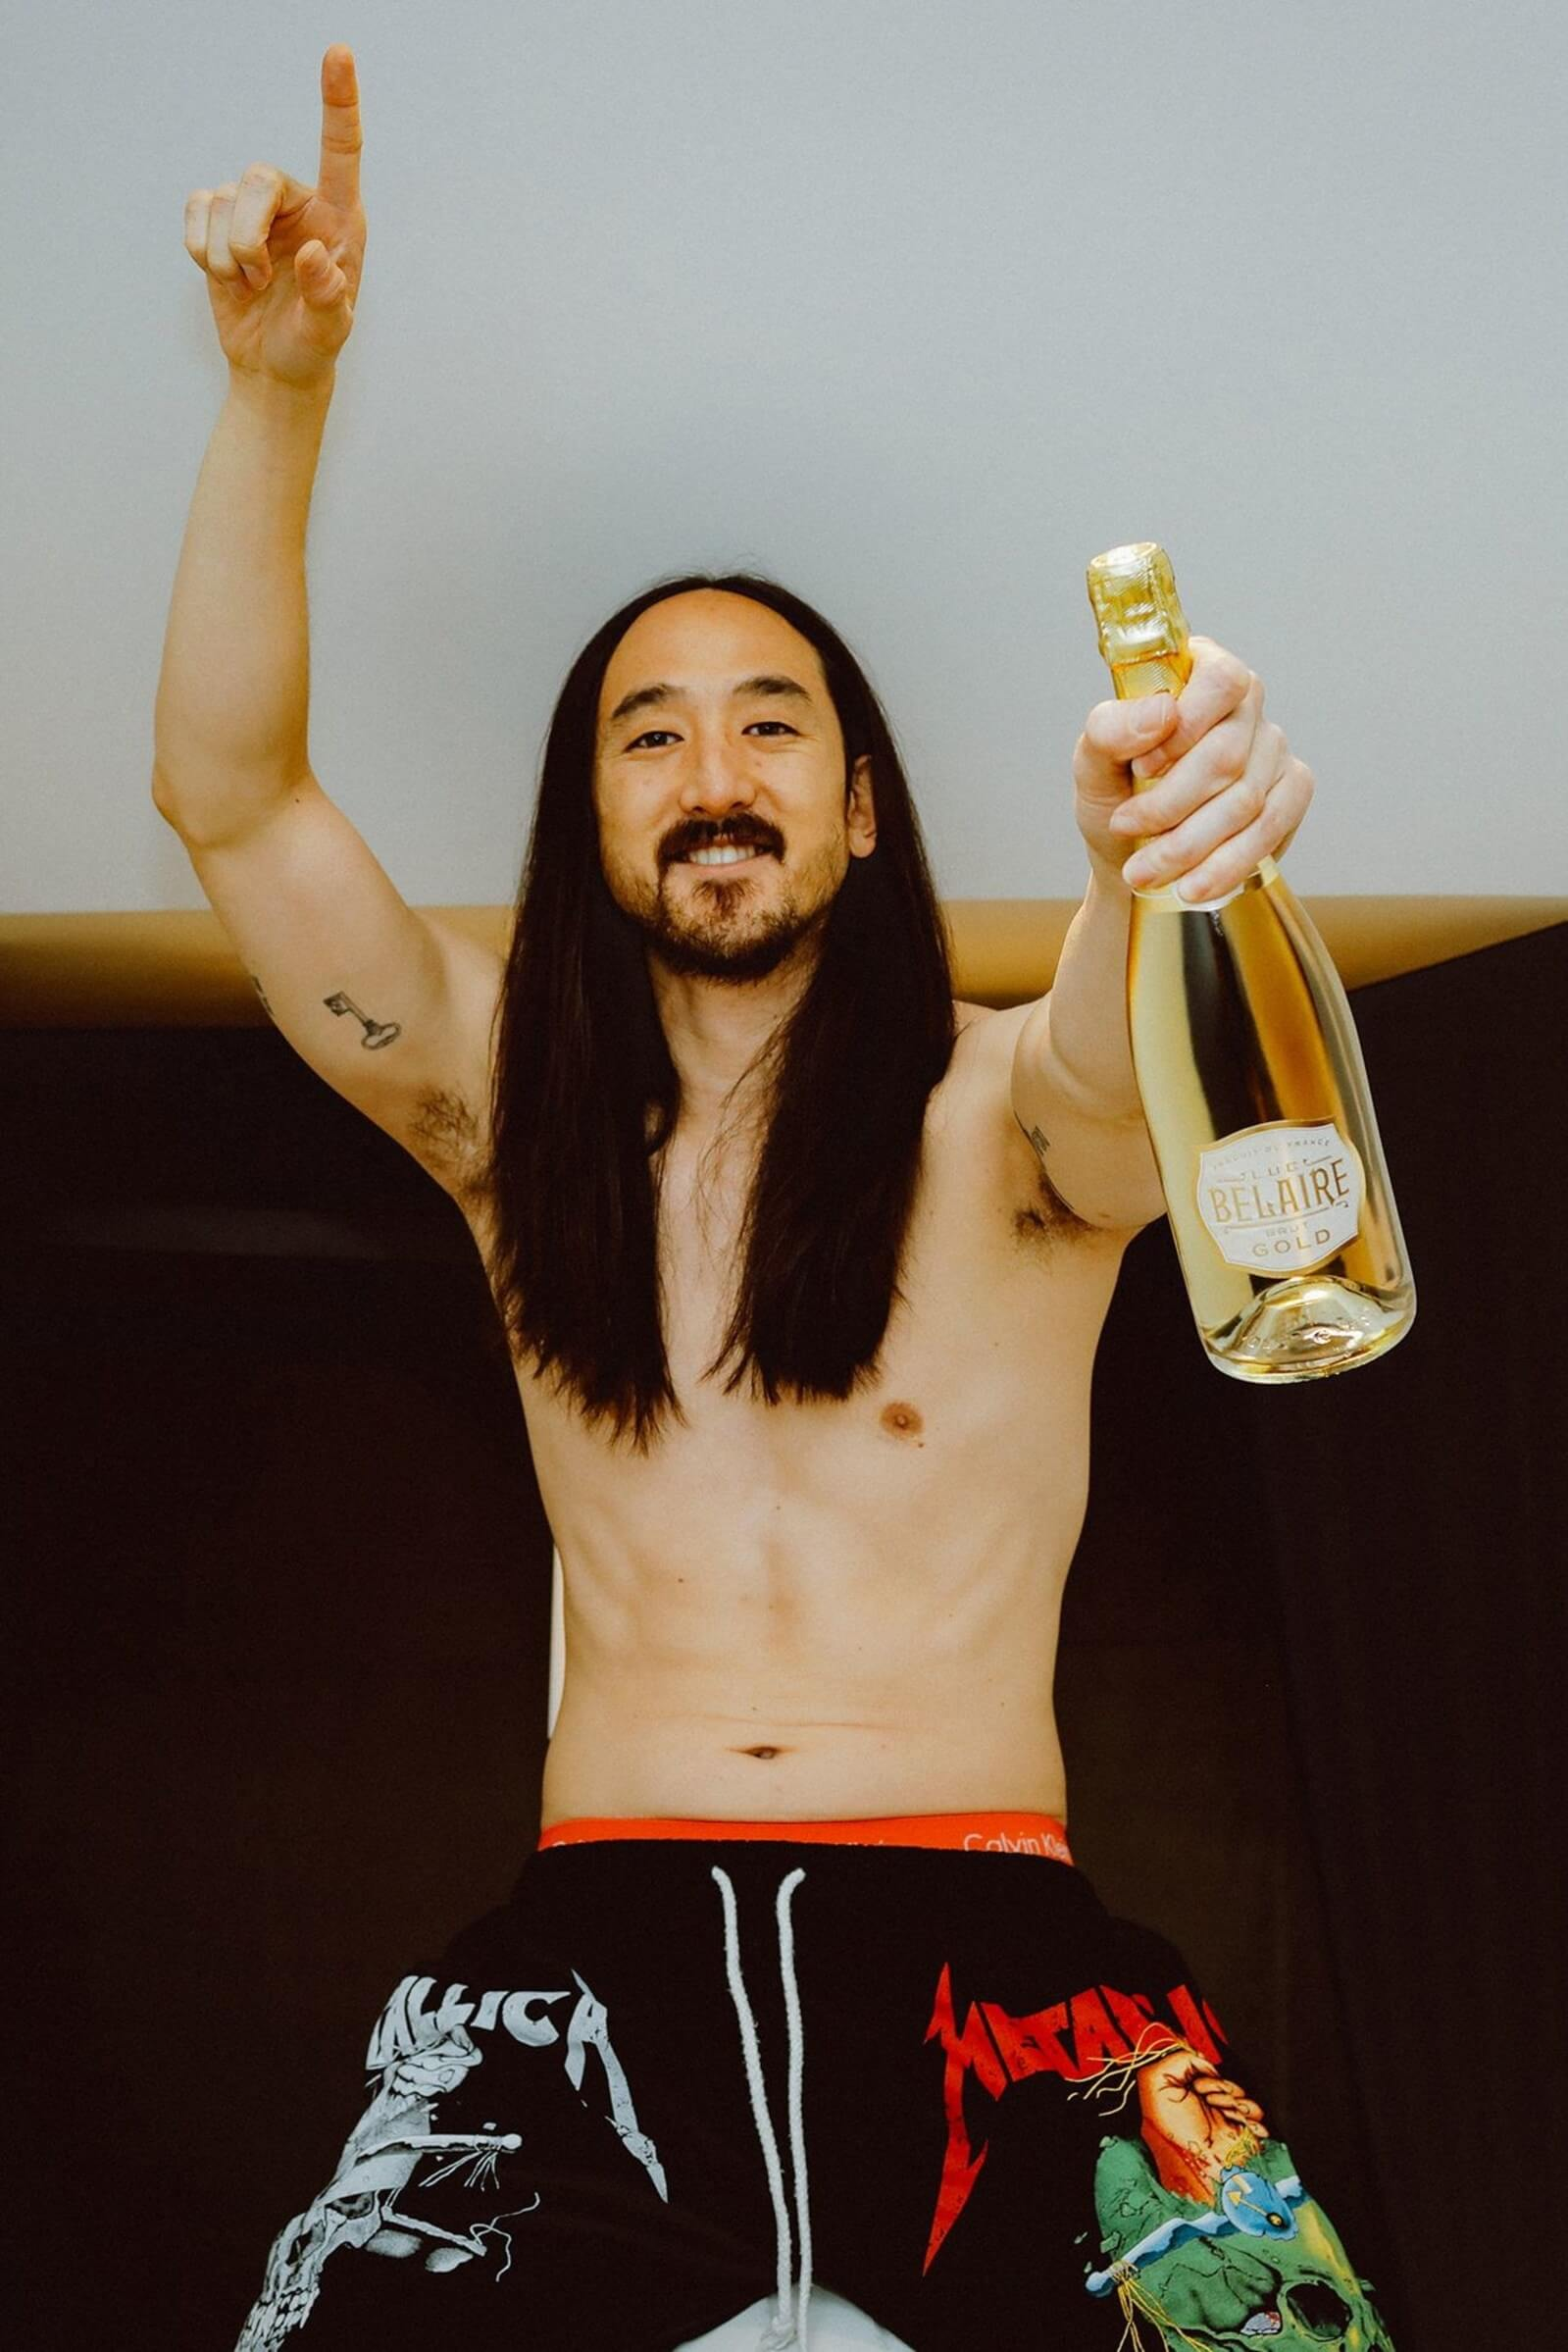 Luc Belaire names celebrity DJ Steve Aoki official global brand ambassador for launch of Luc Belaire Gold sparkling wine - What's Shakin' week of June 26